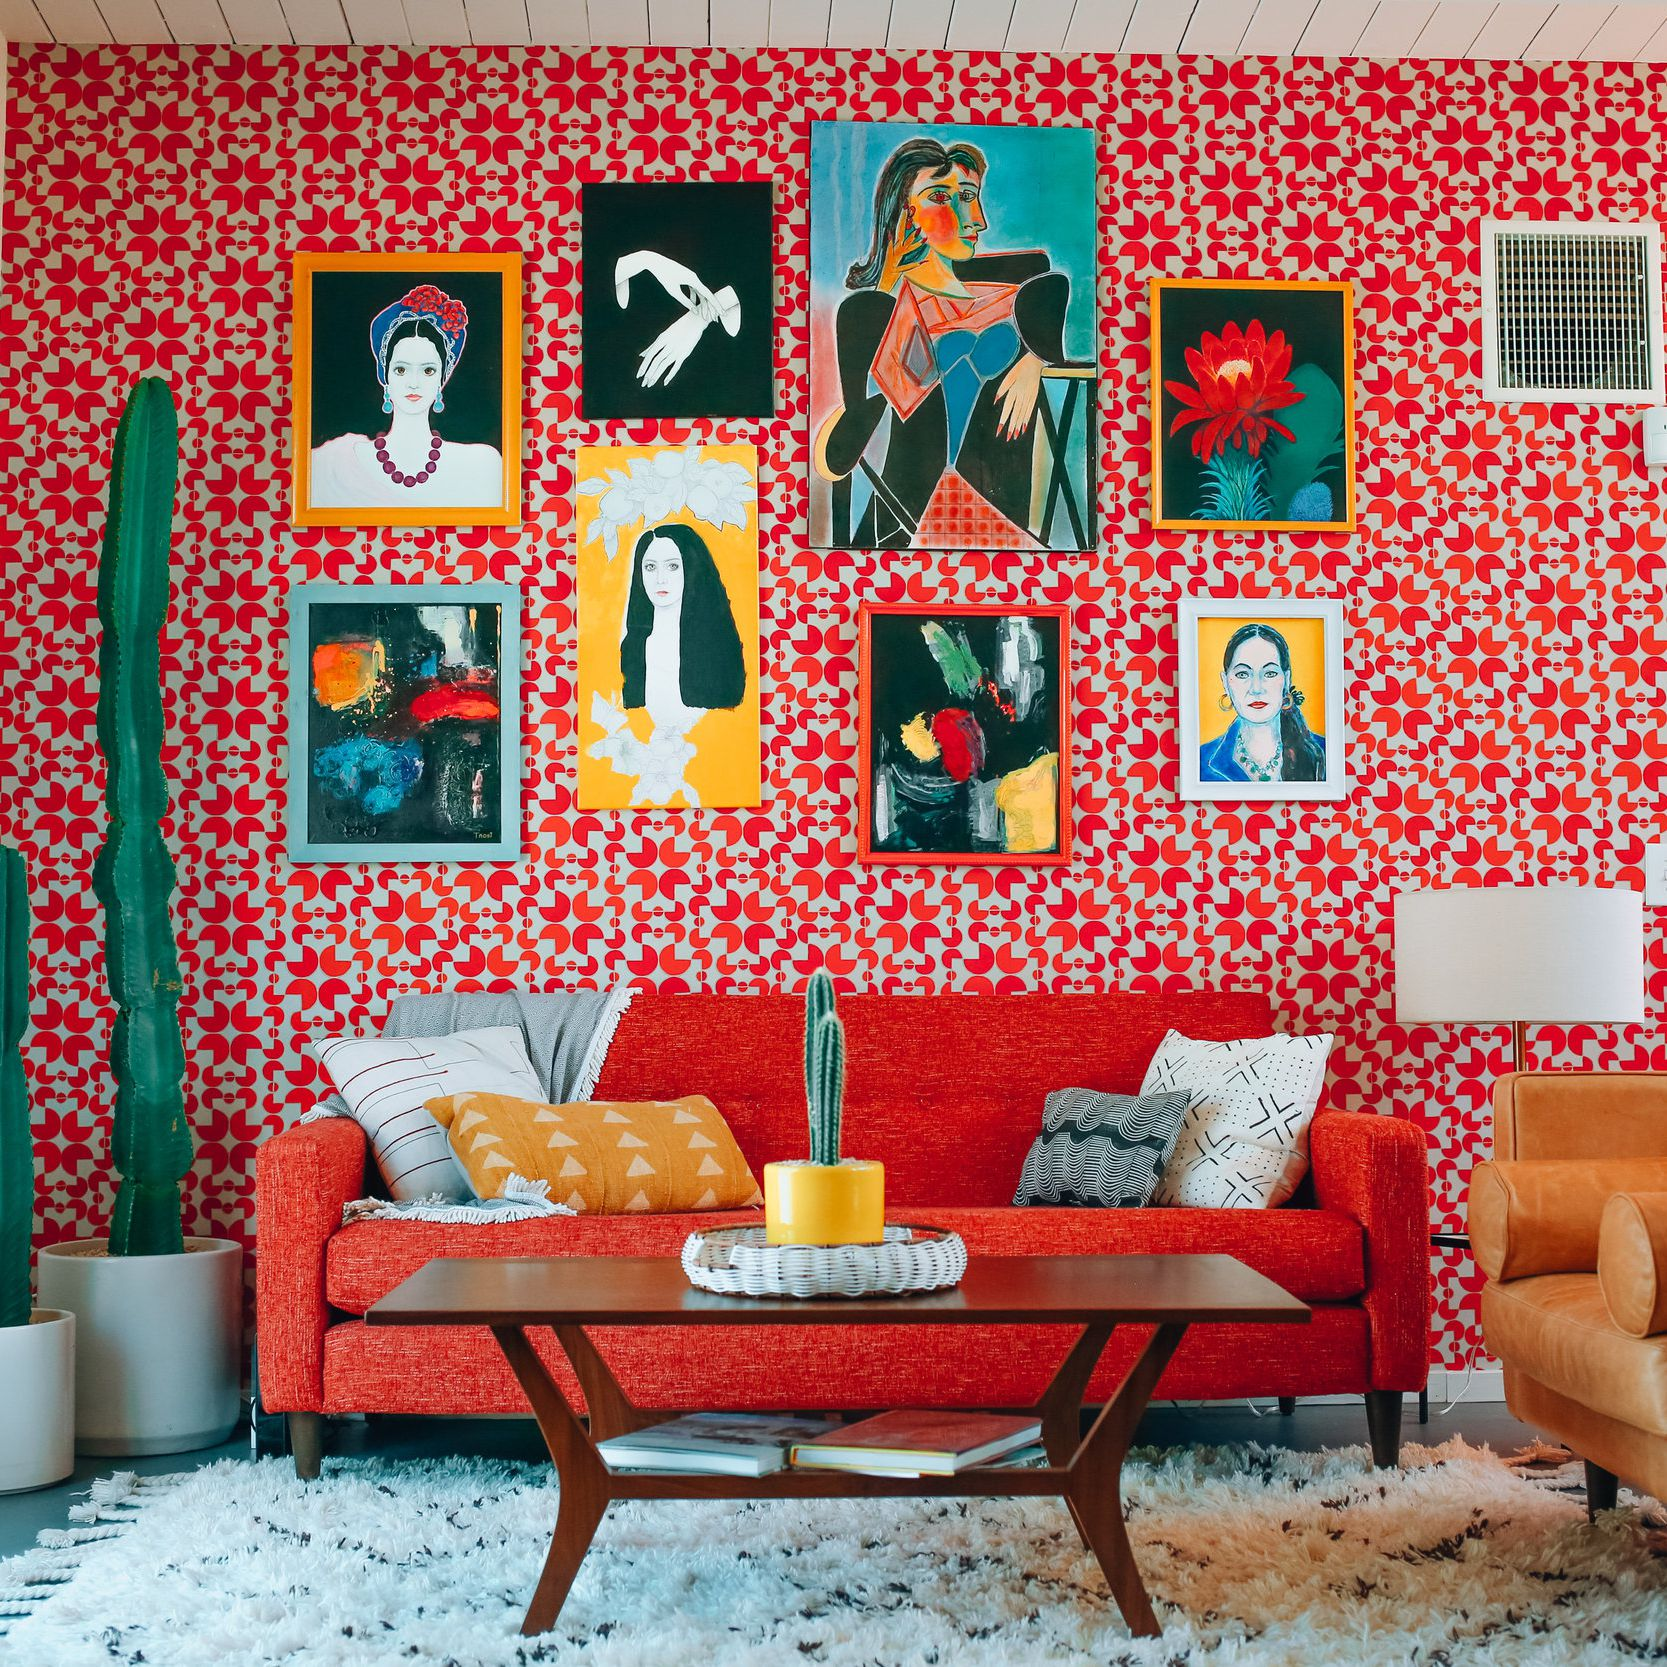 Decorate With Red In The Living Room, Red Living Room Ideas